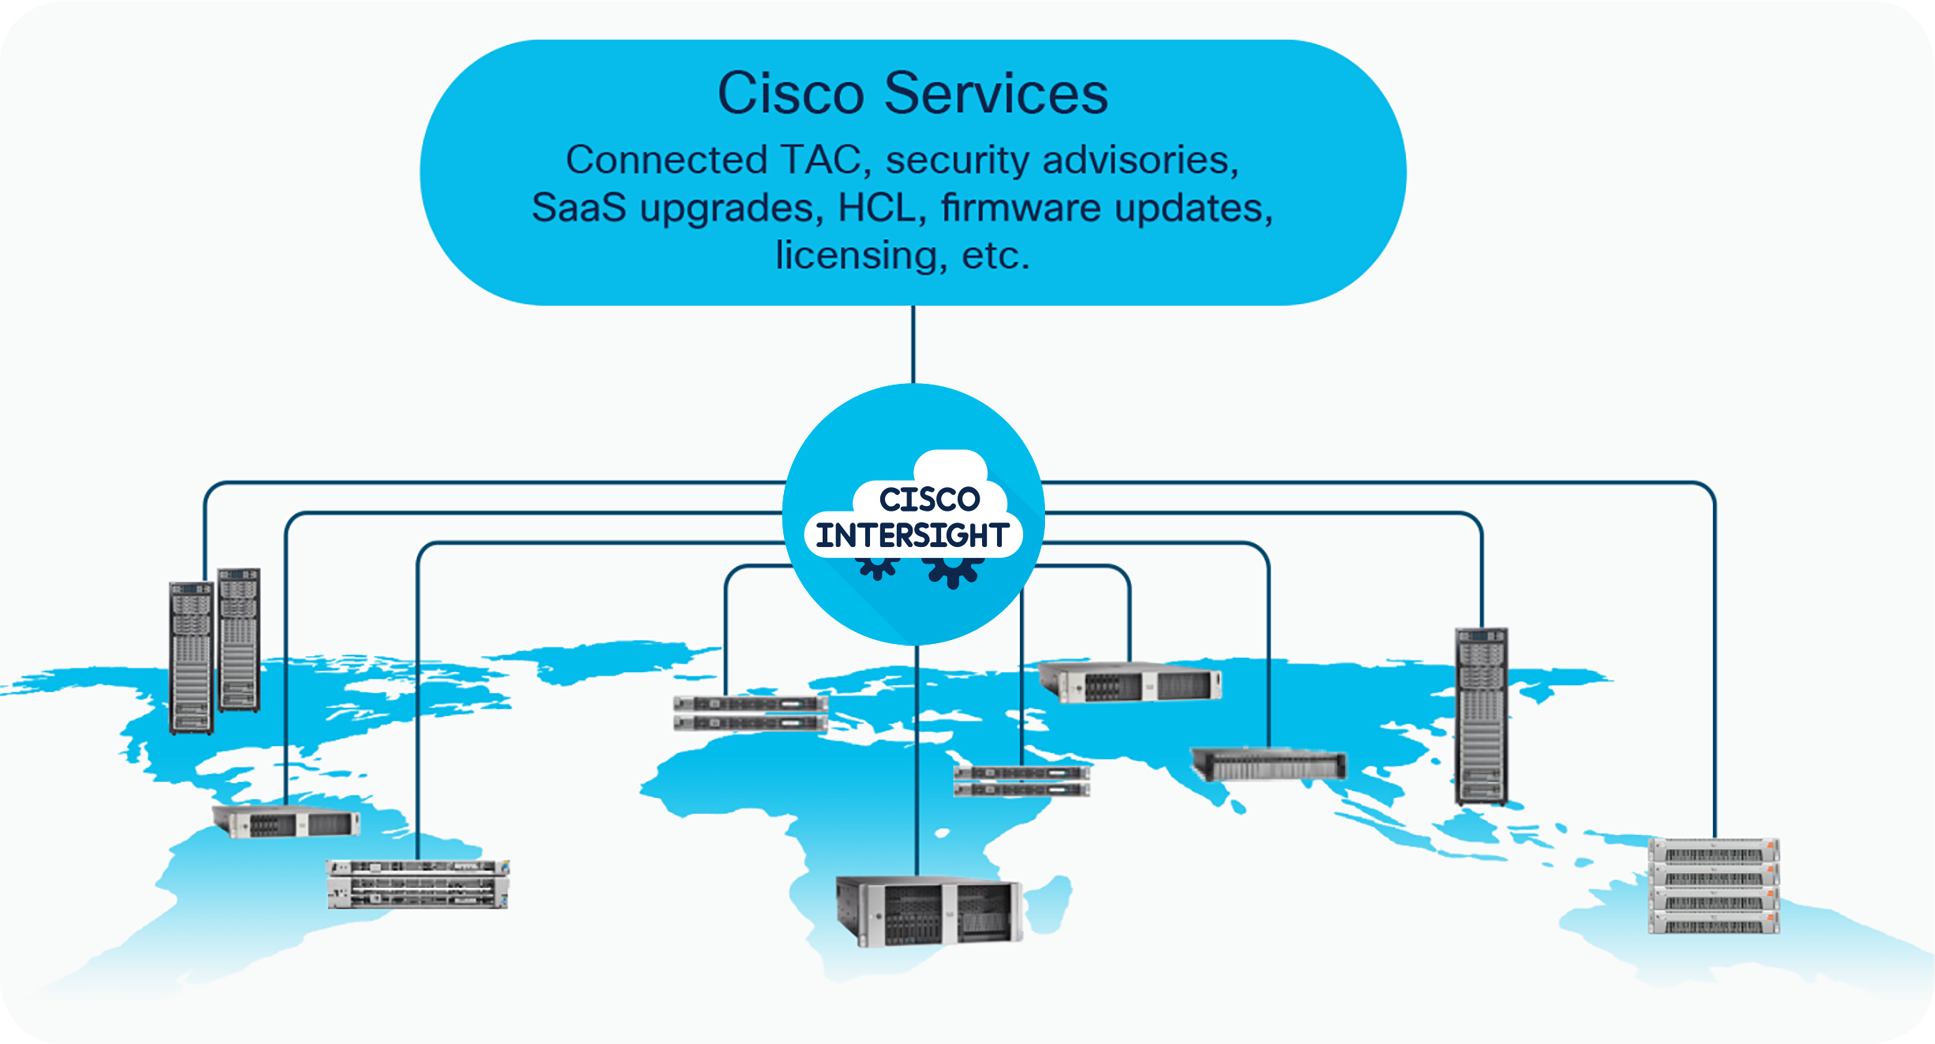 Conceptual overview of Cisco Intersight and supporting Cisco Services